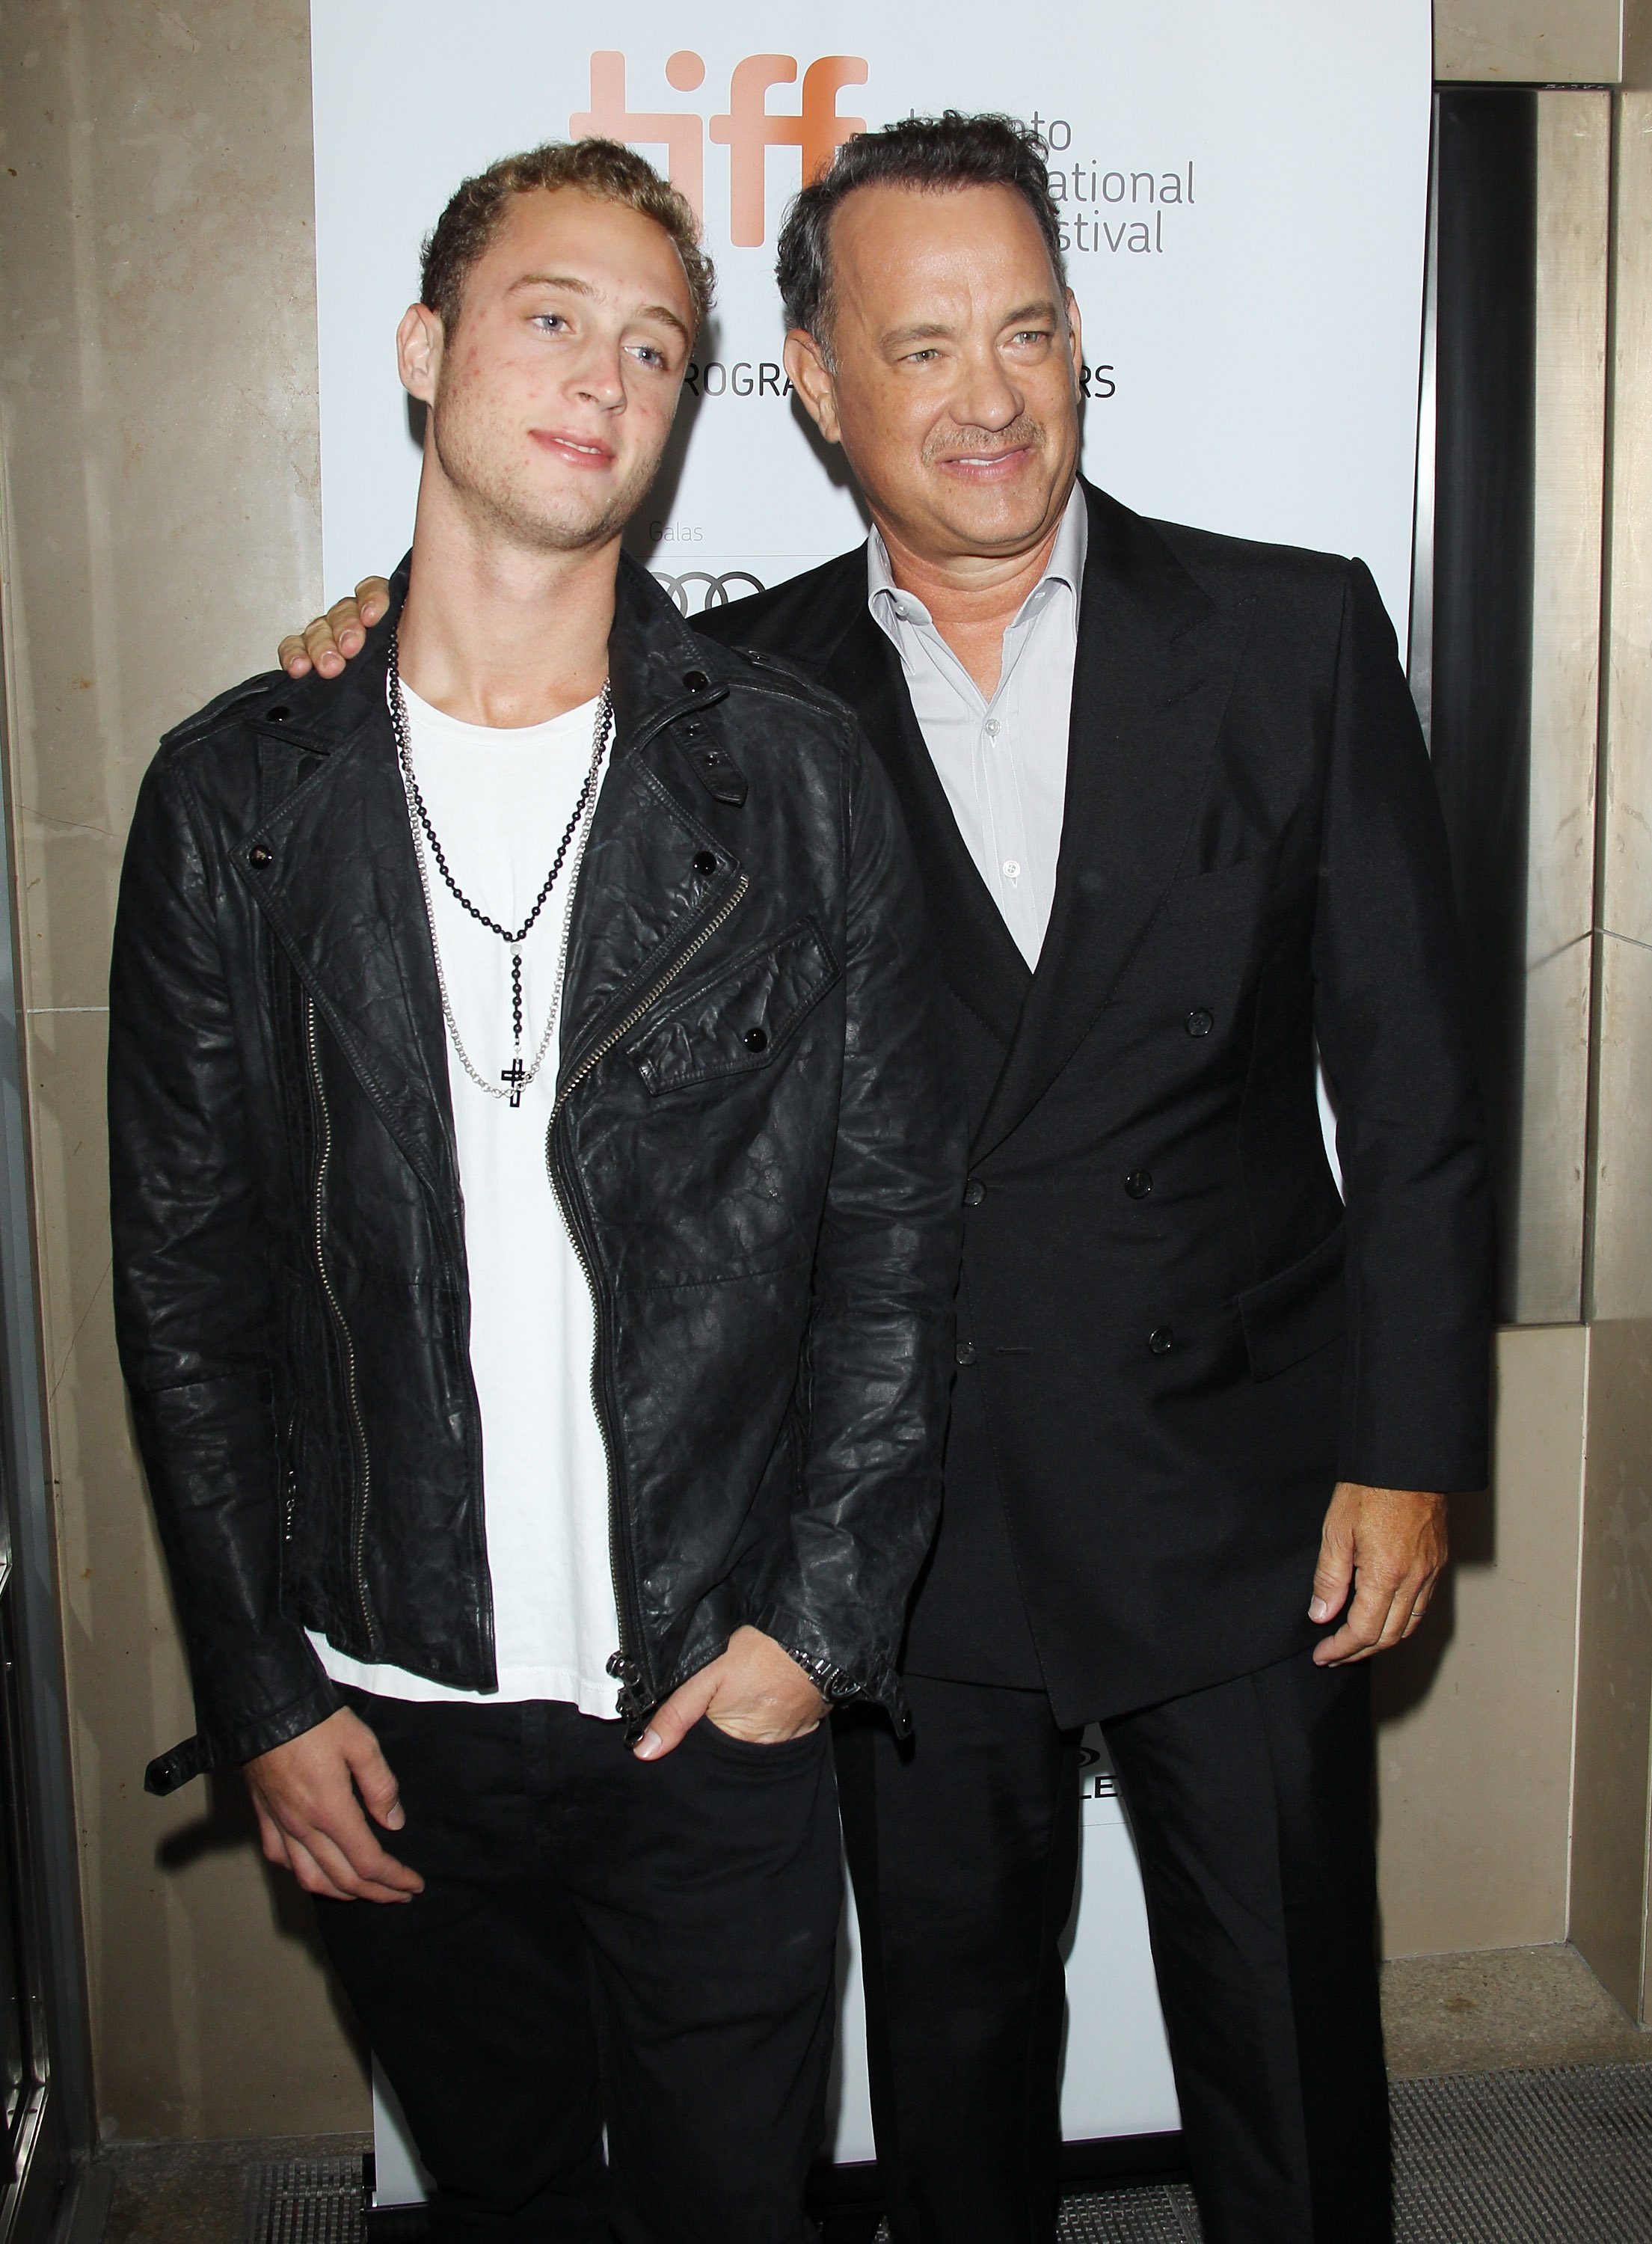 "Image Credits: Getty Images / Michael Tran / FilmMagic | Tom Hanks (R) and his son Chet Hanks arrive at ""Cloud Atlas"" premiere during the 2012 Toronto International Film Festival held at Princess of Wales Theatre on September 8, 2012 in Toronto, Canada."